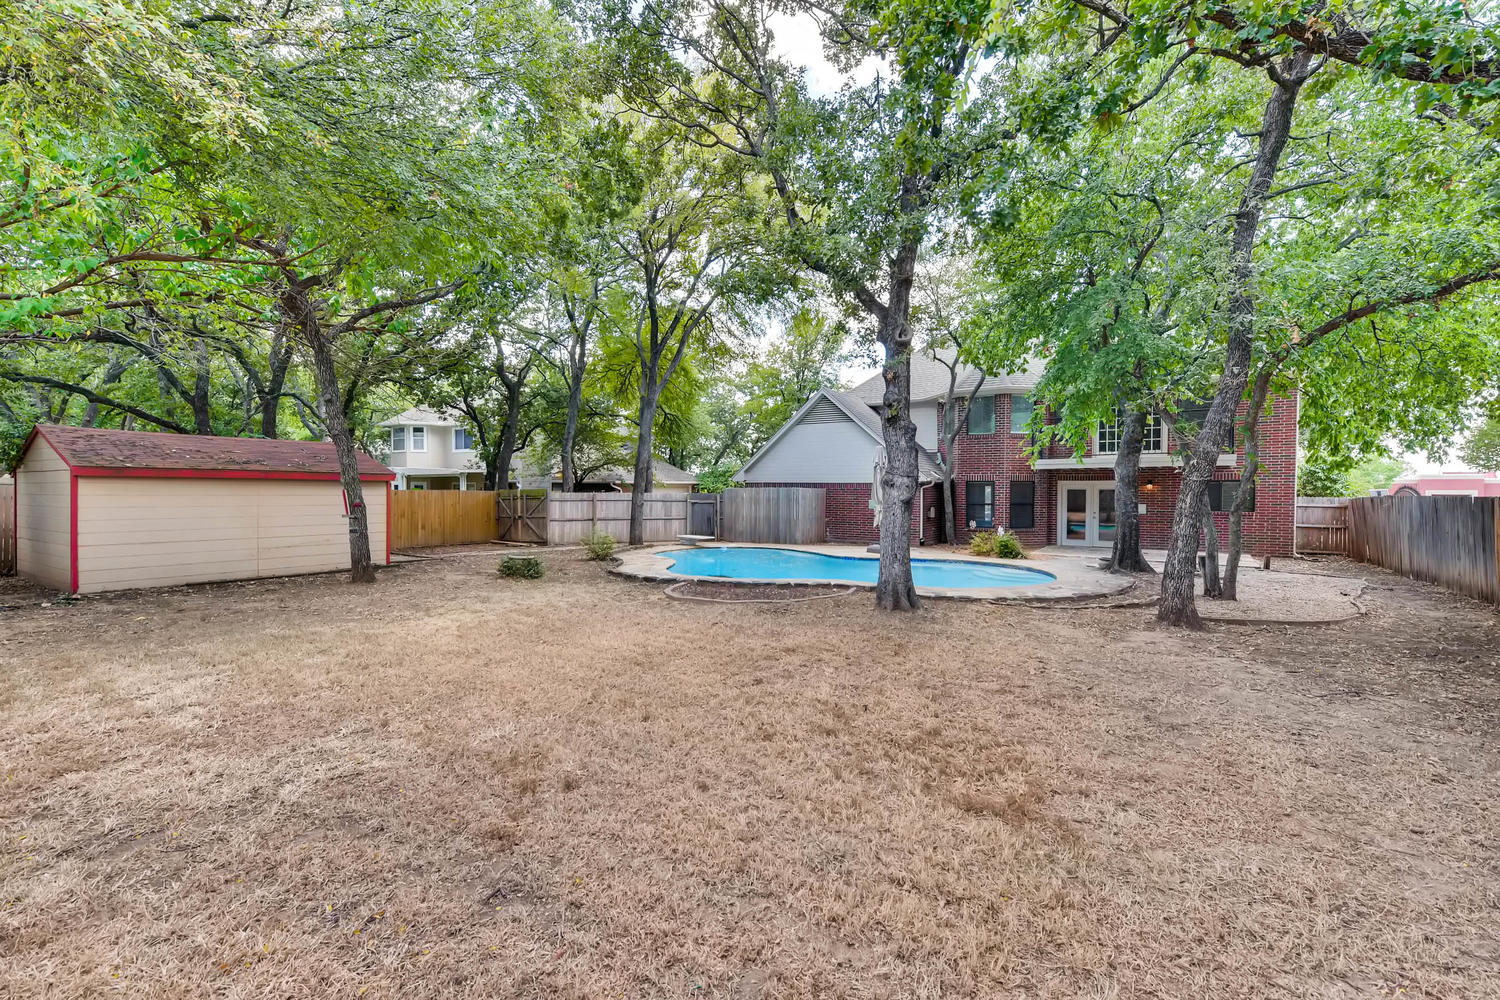 Photo of 7328 Holiday Ln, North Richland Hills, TX, 76182